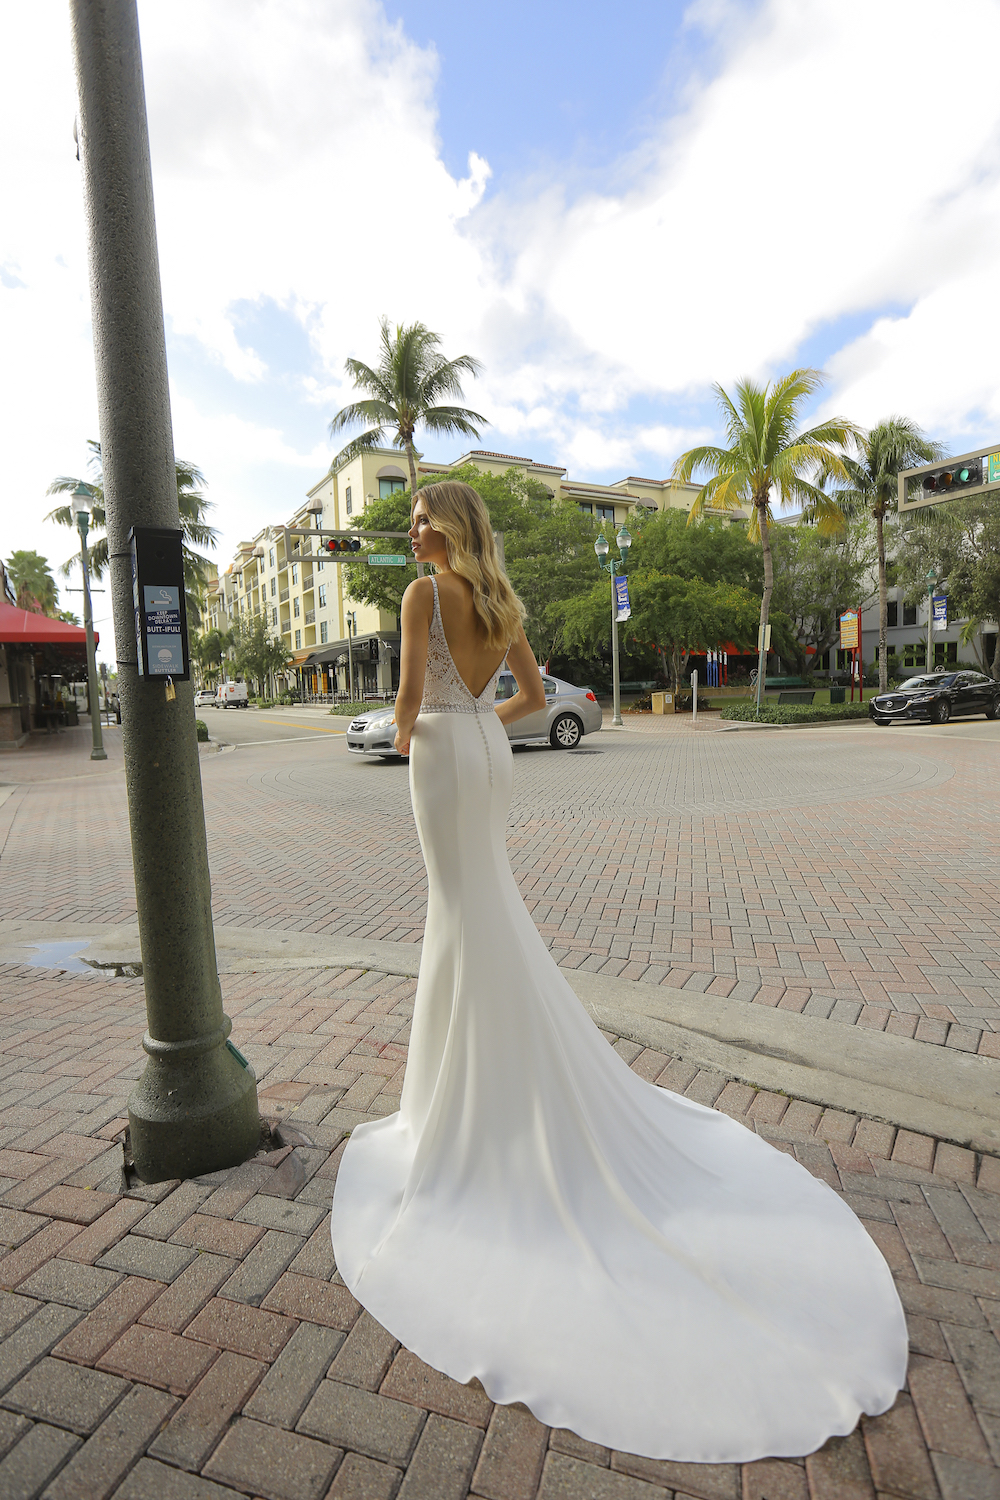 Avery Wedding Dress from the Silver Springs Collection by Randy Fenoli